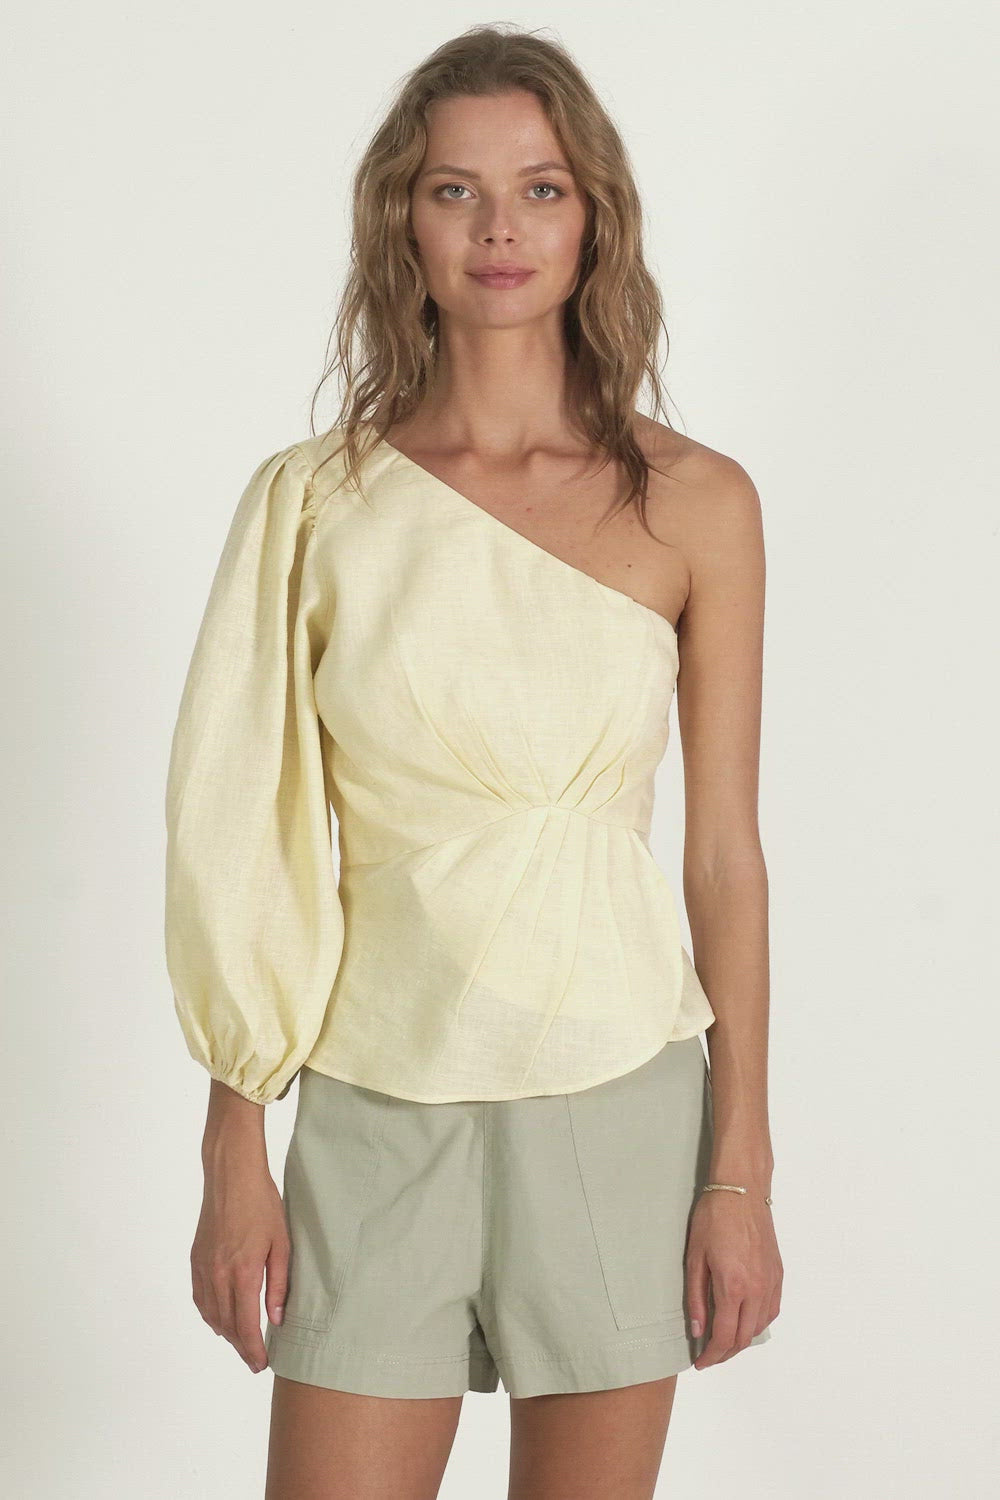 A woman wearing a summer one shoulder top made by Lilya